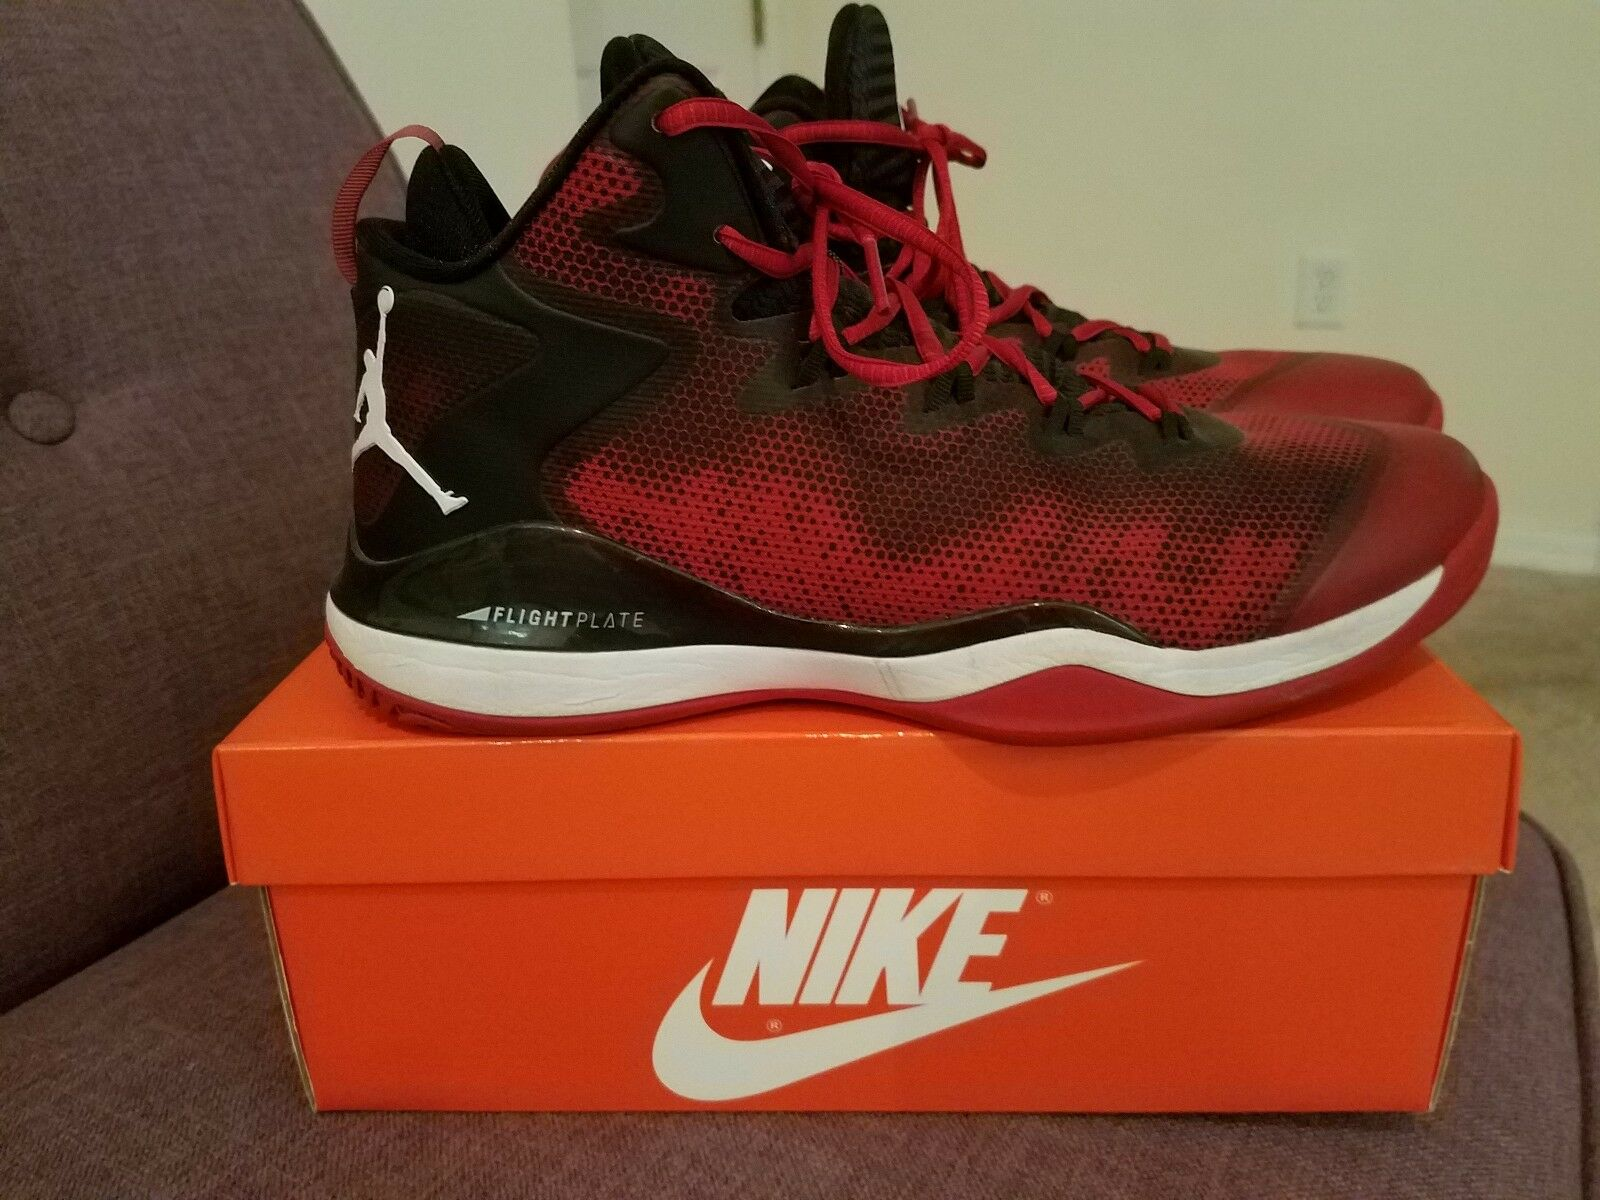 NIKE Jordan Men's Flight Plate  Sz 11 Red Black White The latest discount shoes for men and women